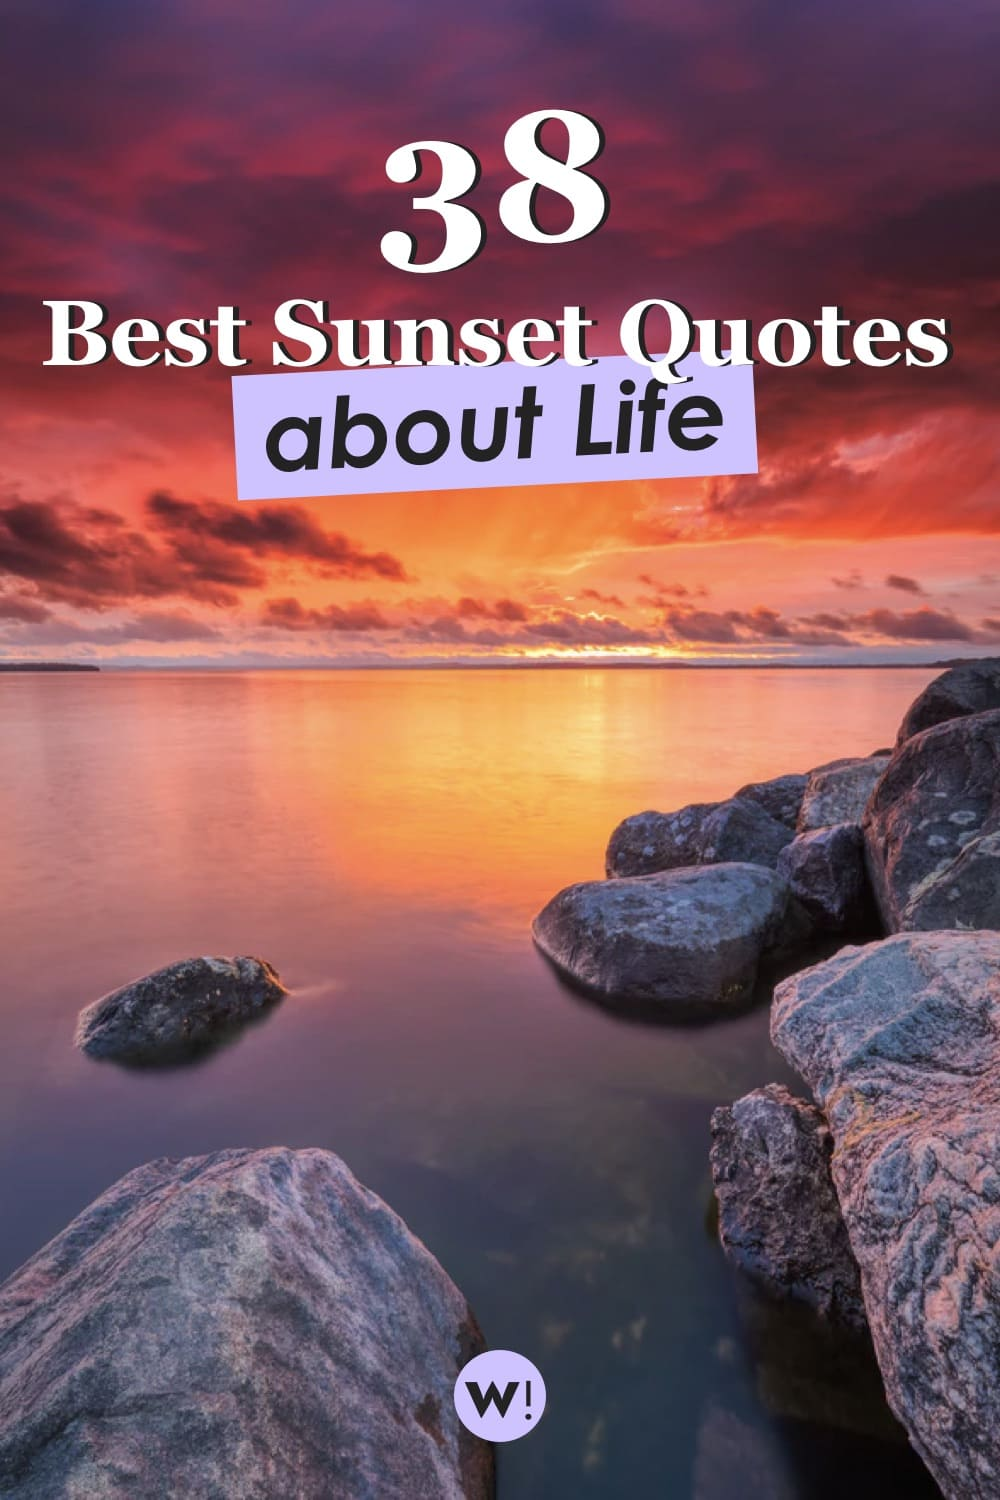 There are hundreds of sunset quotes out there. But you don't want just any sunset quote. No, you want sunset quotes about life specifically, right? I thought so. Then you'll absolutely love these 38 life sunset quotes! sunset quotes life  sunset quotes life inspirational  beautiful sunset quotes life  chasing sunsets quotes life  sunset quotes life inspirational